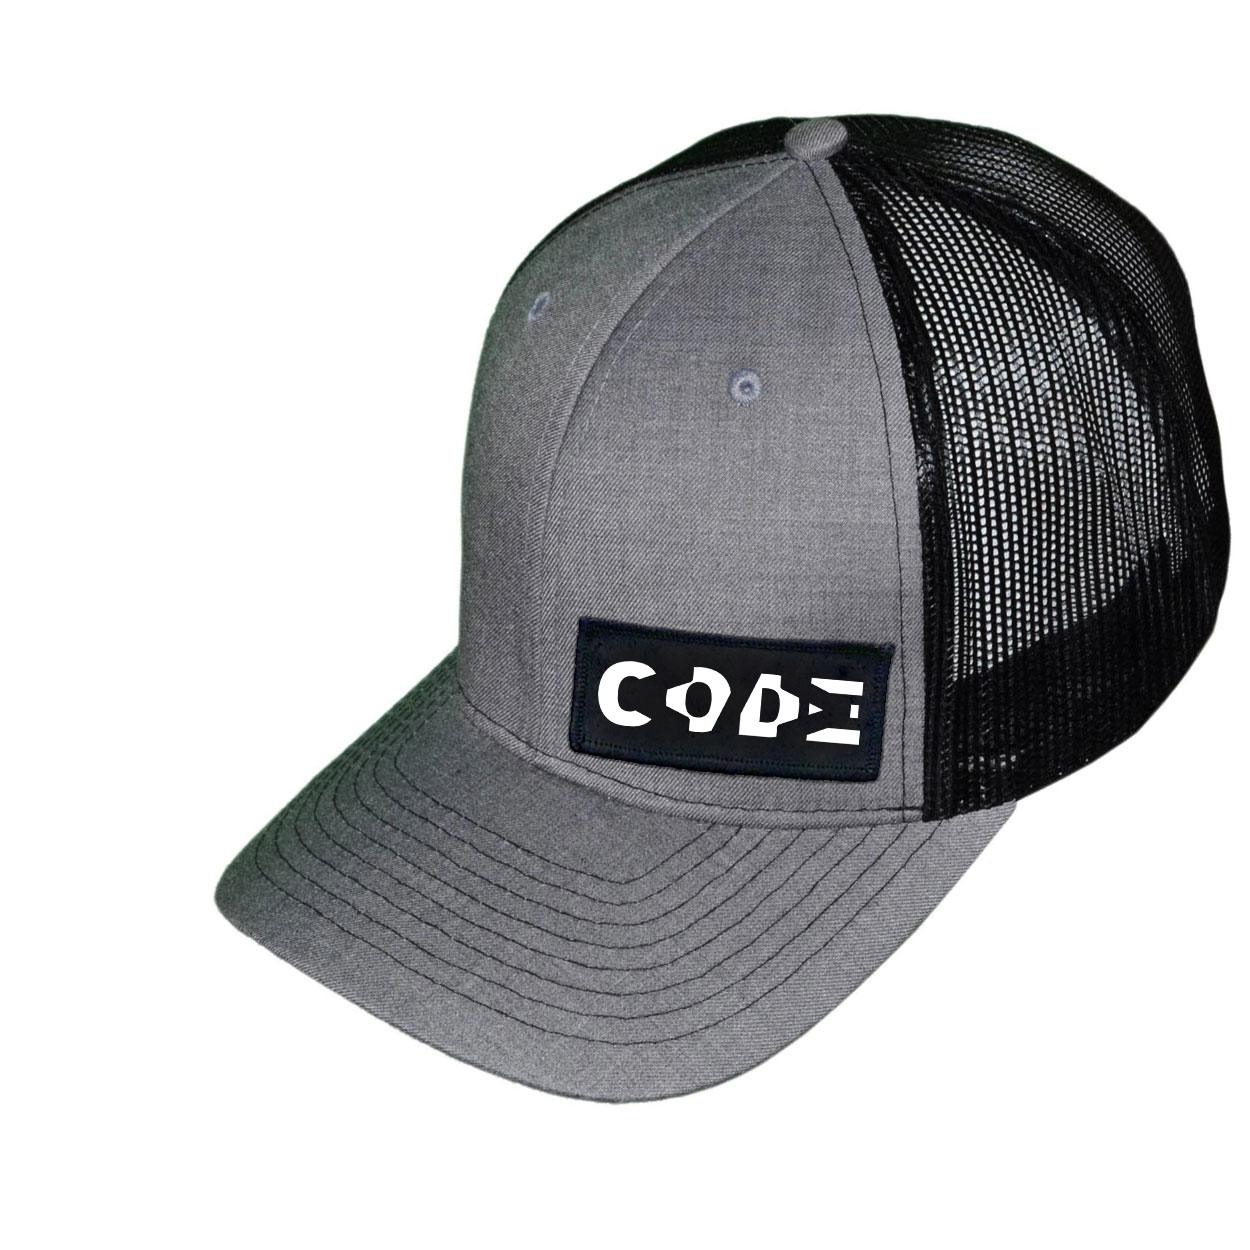 Code Tag Logo Night Out Woven Patch Snapback Trucker Hat Heather Gray/Black (White Logo)